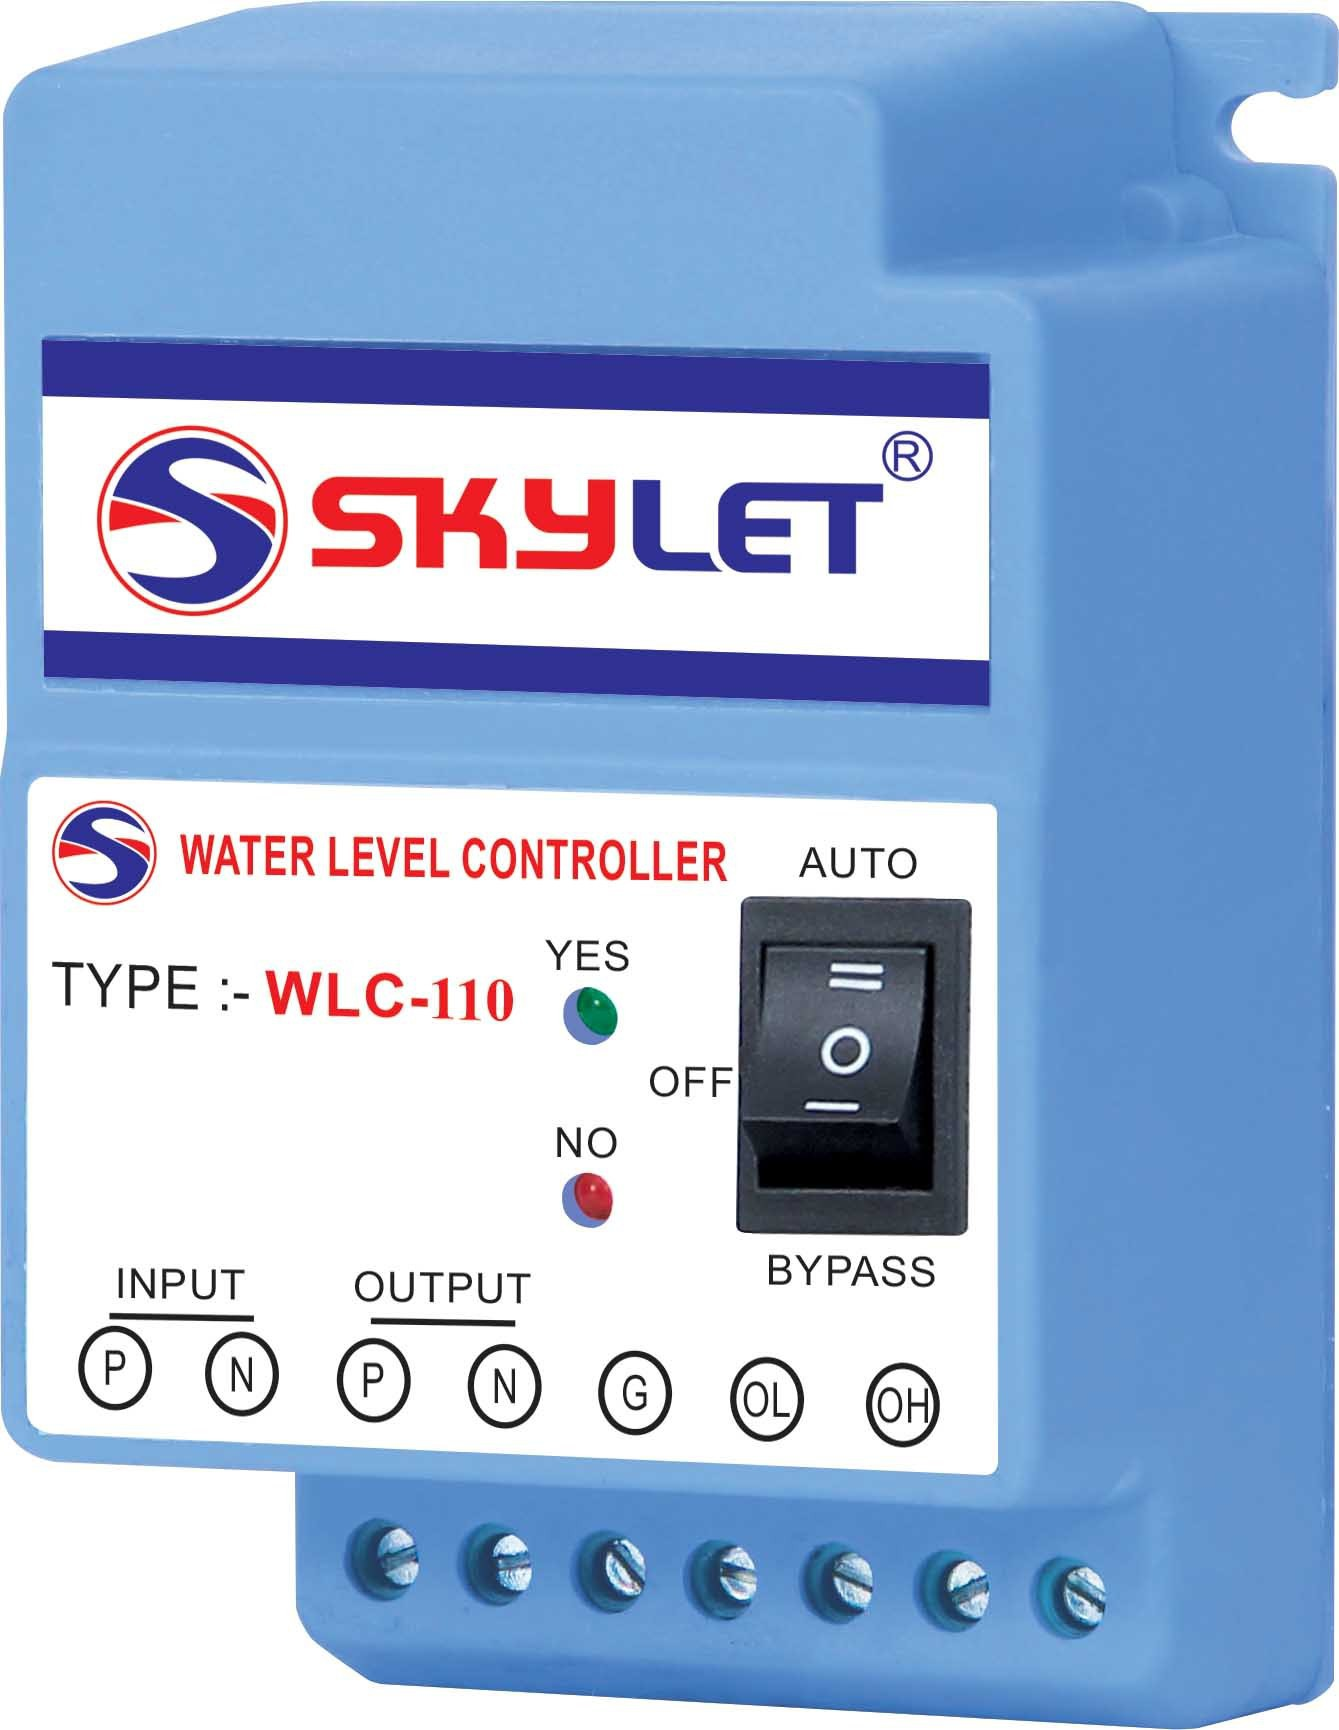 View SKYLET WLC-110 water level controller Wired Sensor Security System Home Appliances Price Online(SKYLET)